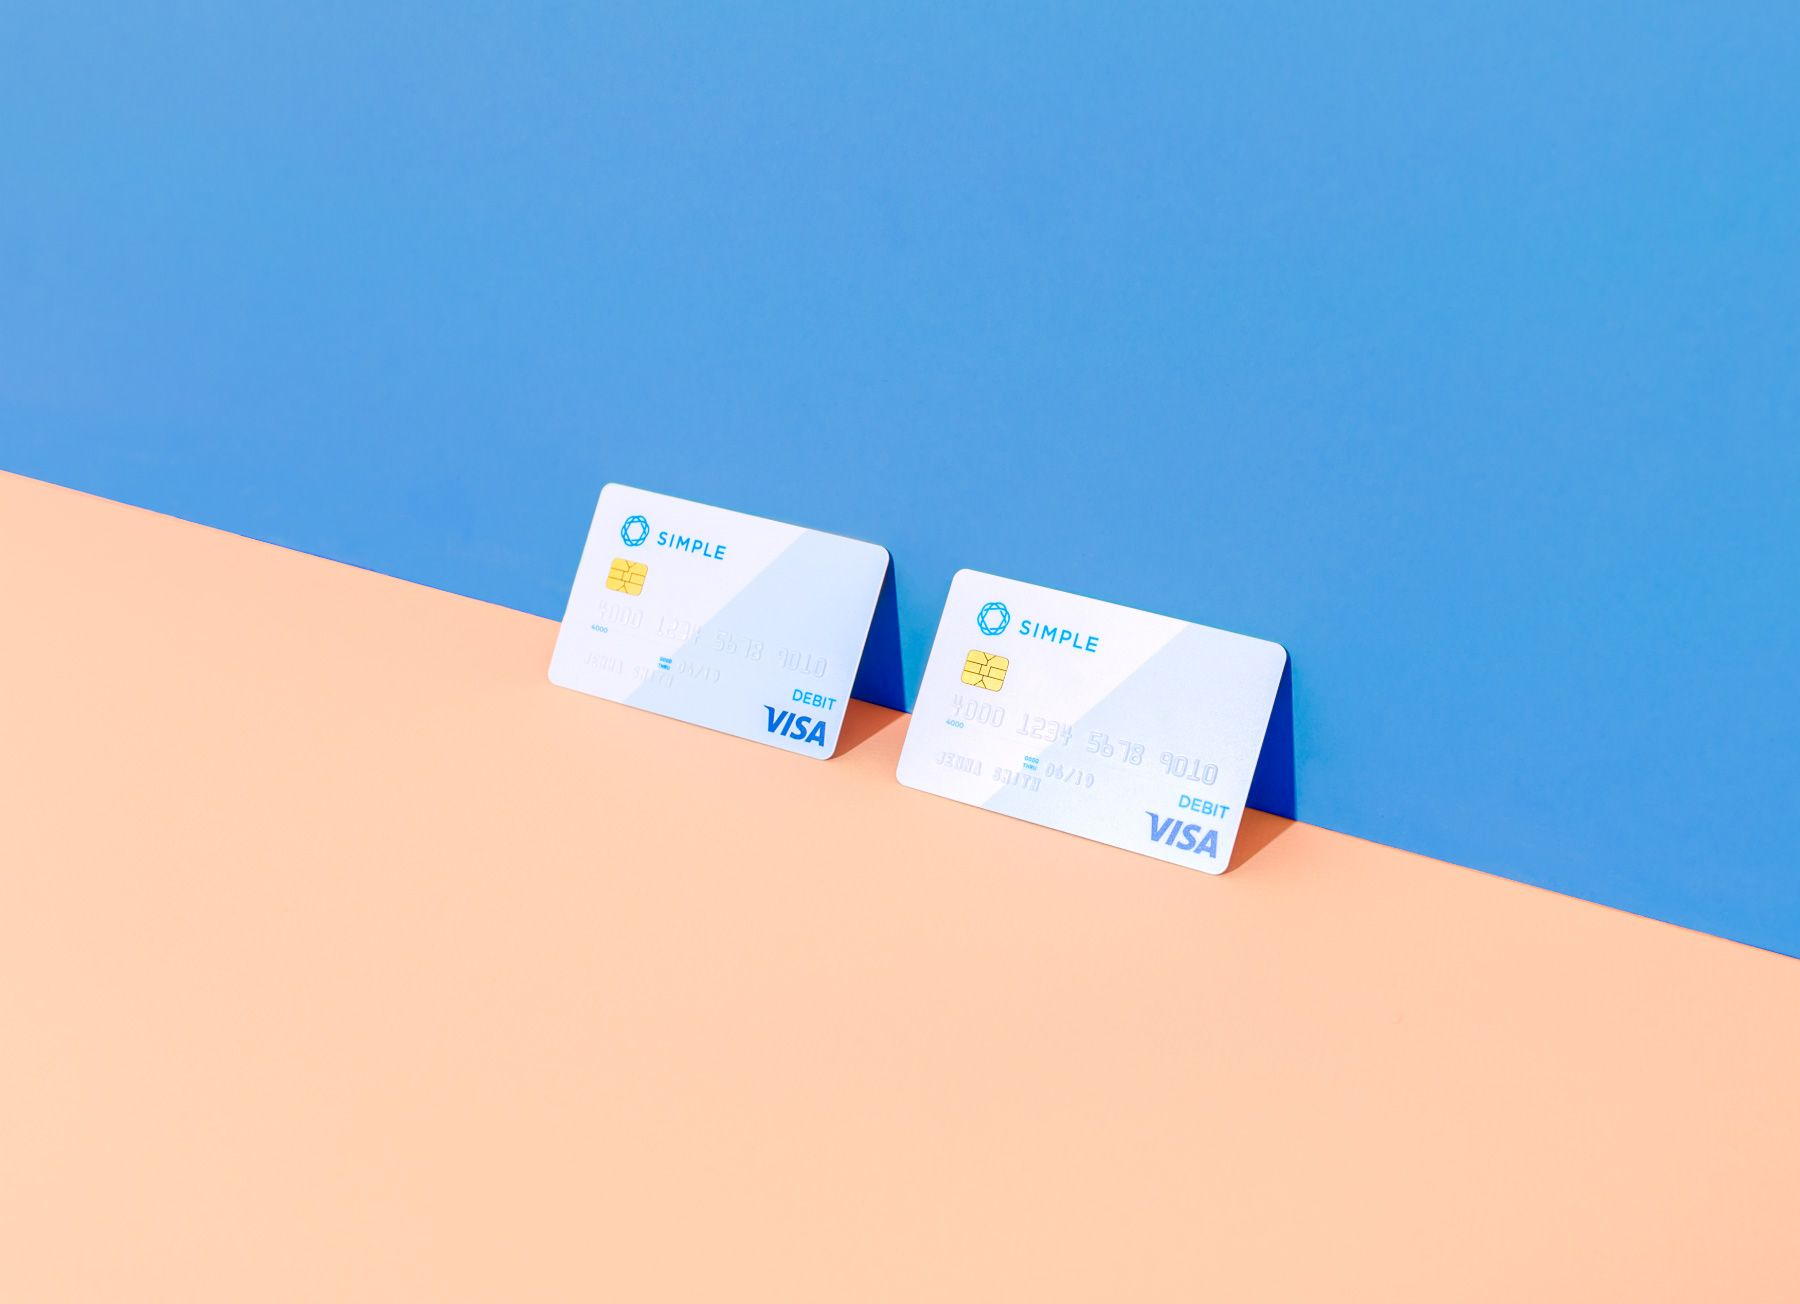 Shared debit card from Simple, which is two colors